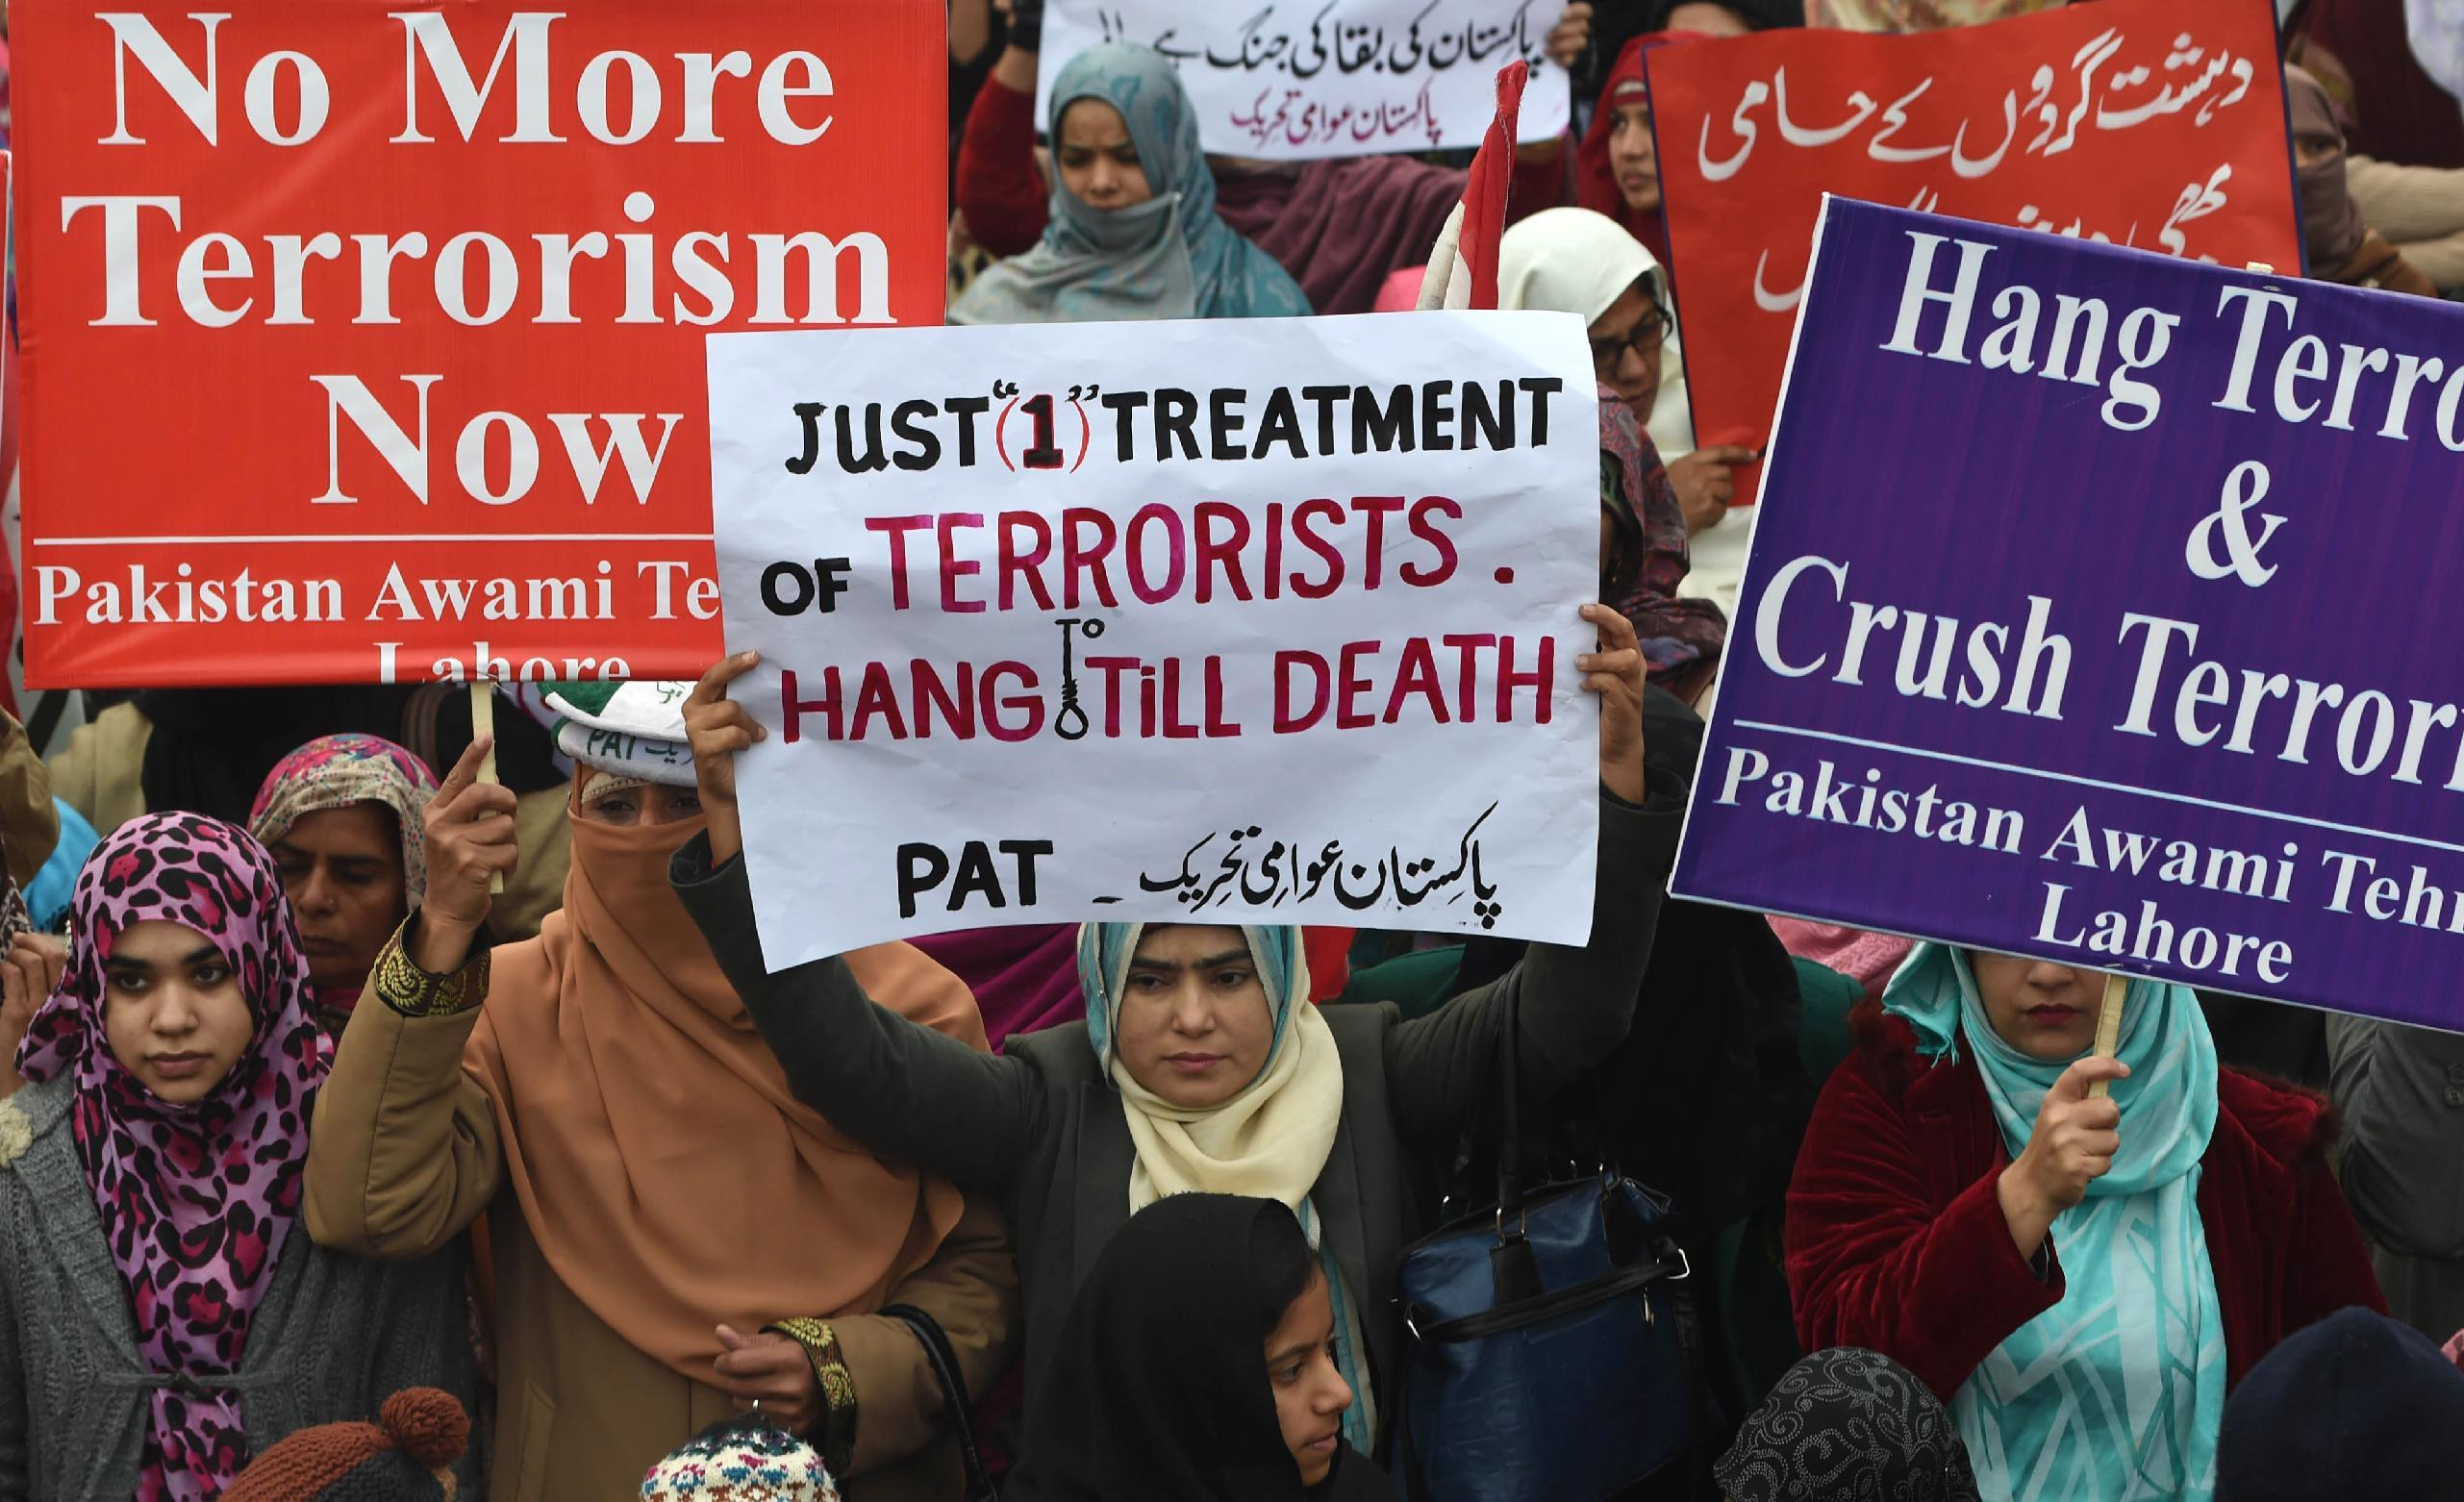 Pakistan plans to execute 500 terror convicts, officials say